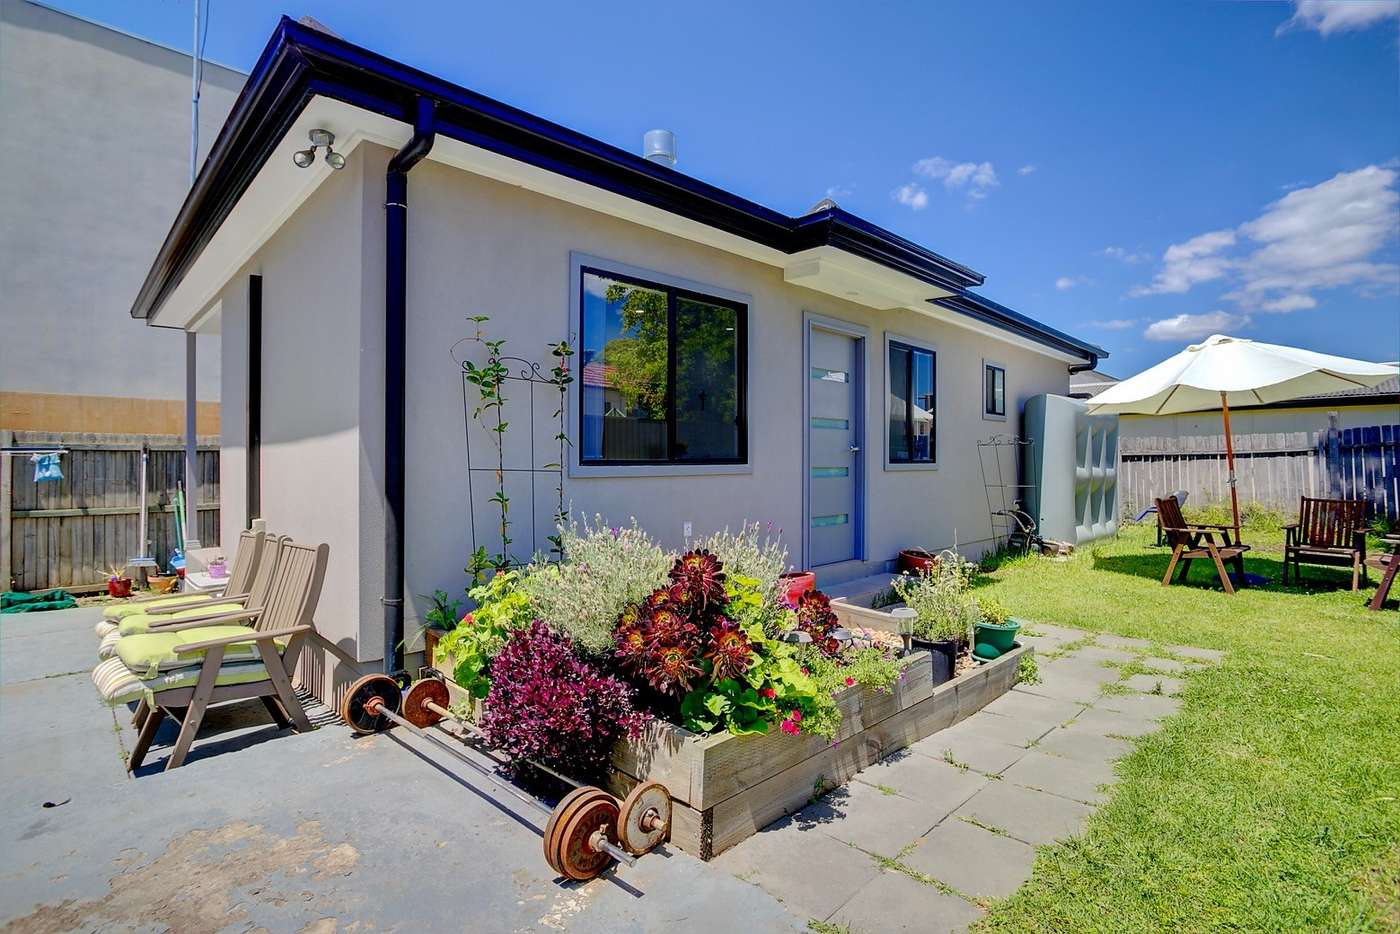 Main view of Homely villa listing, Granny flat/10A Wentworth Street, Greenacre NSW 2190